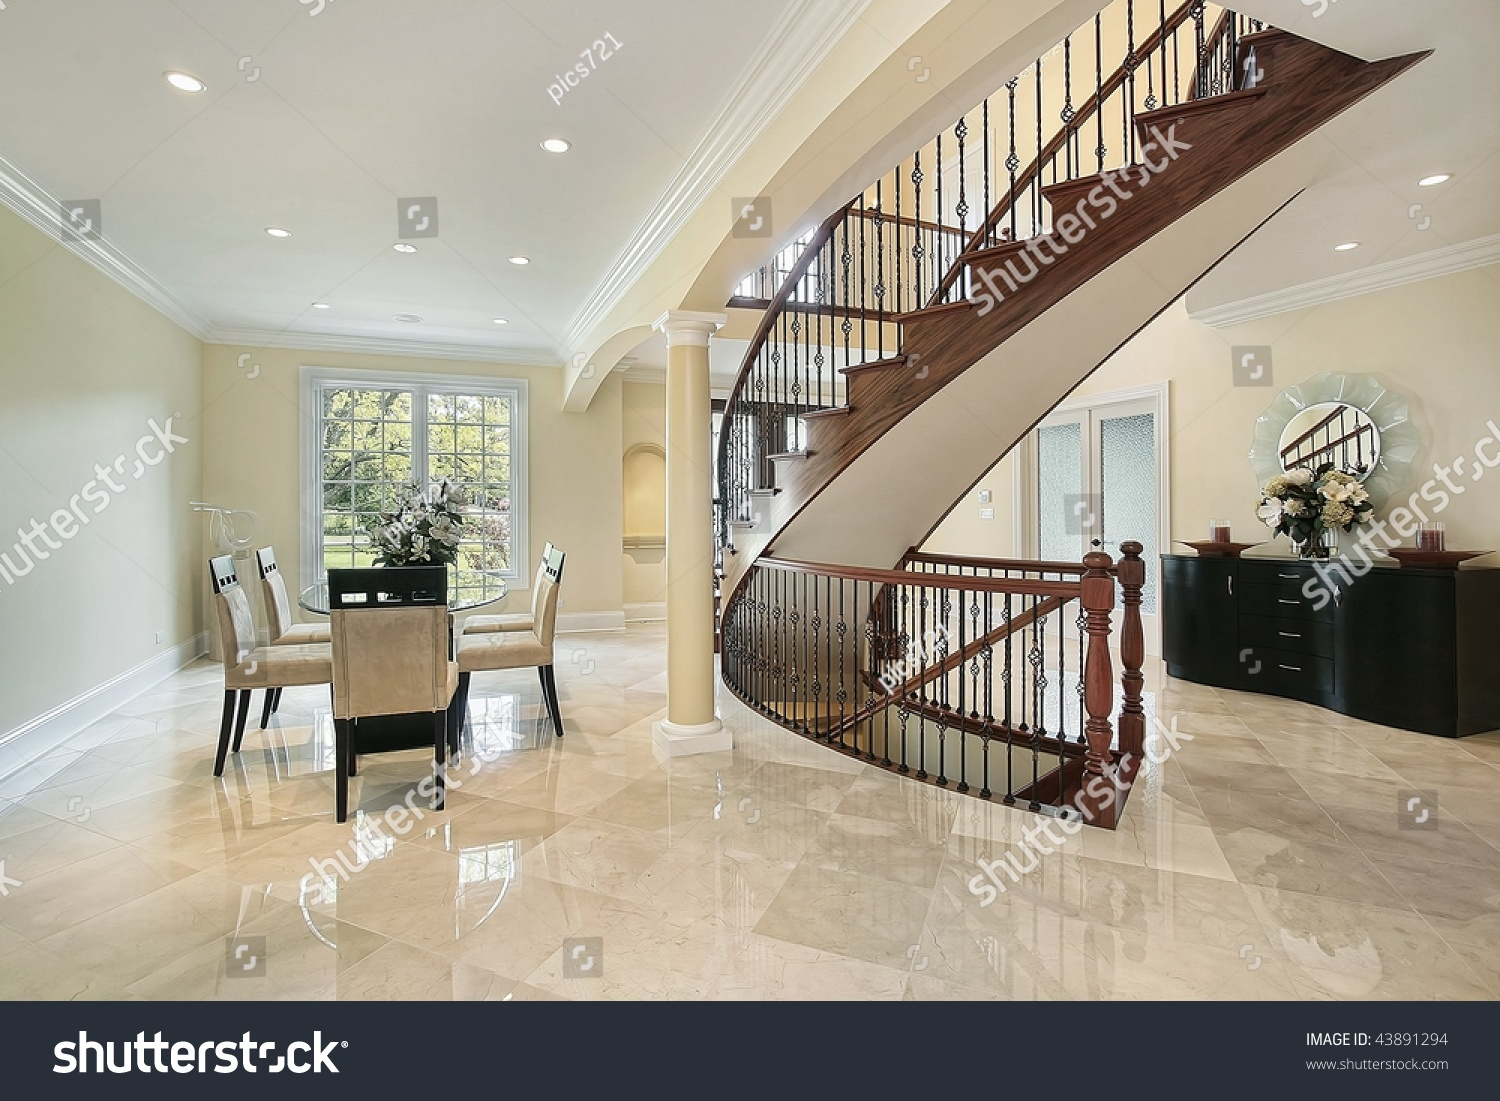 Foyer Open To Dining Room : Foyer with open dining room area stock photo